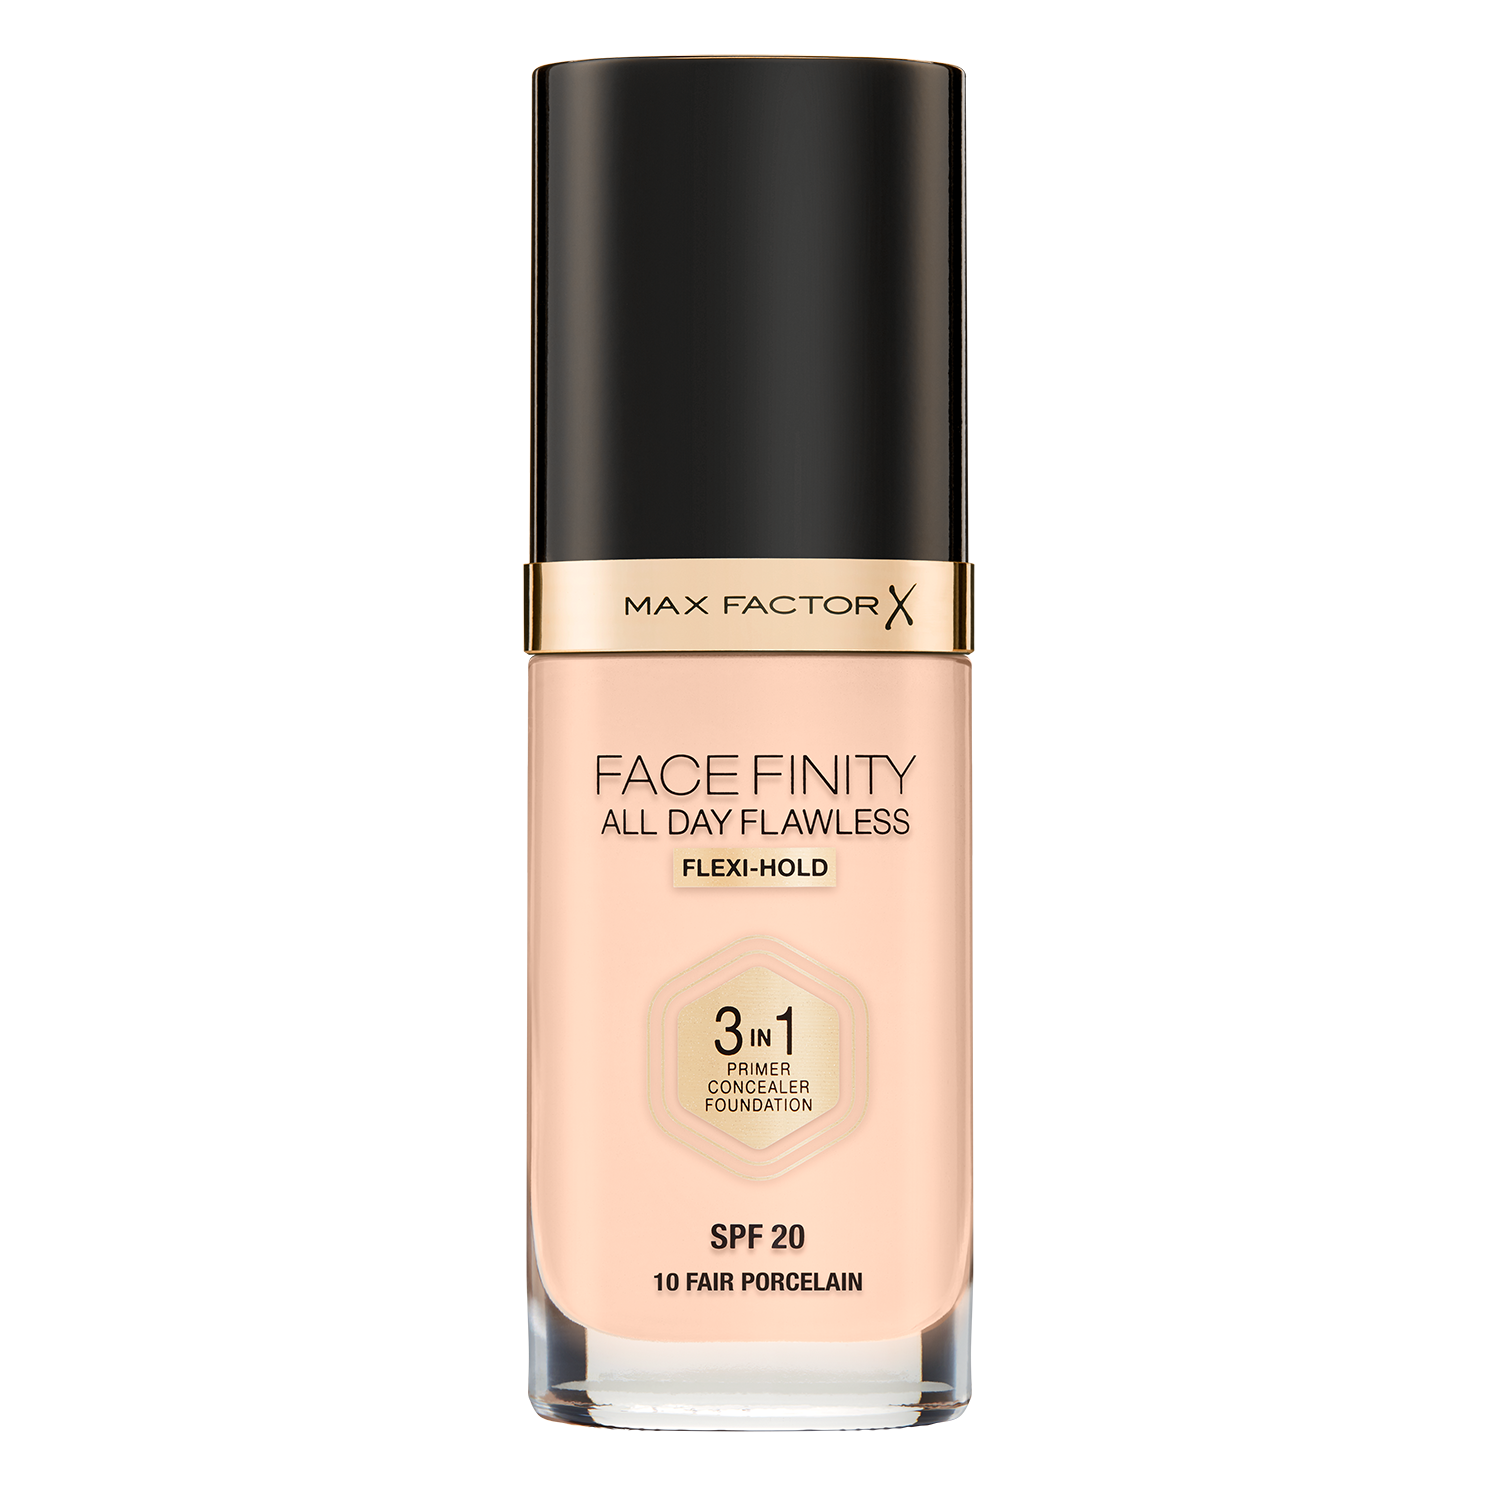 Facefinity All Day Flawless 3-in-1 Foundation in Fair Porcelain